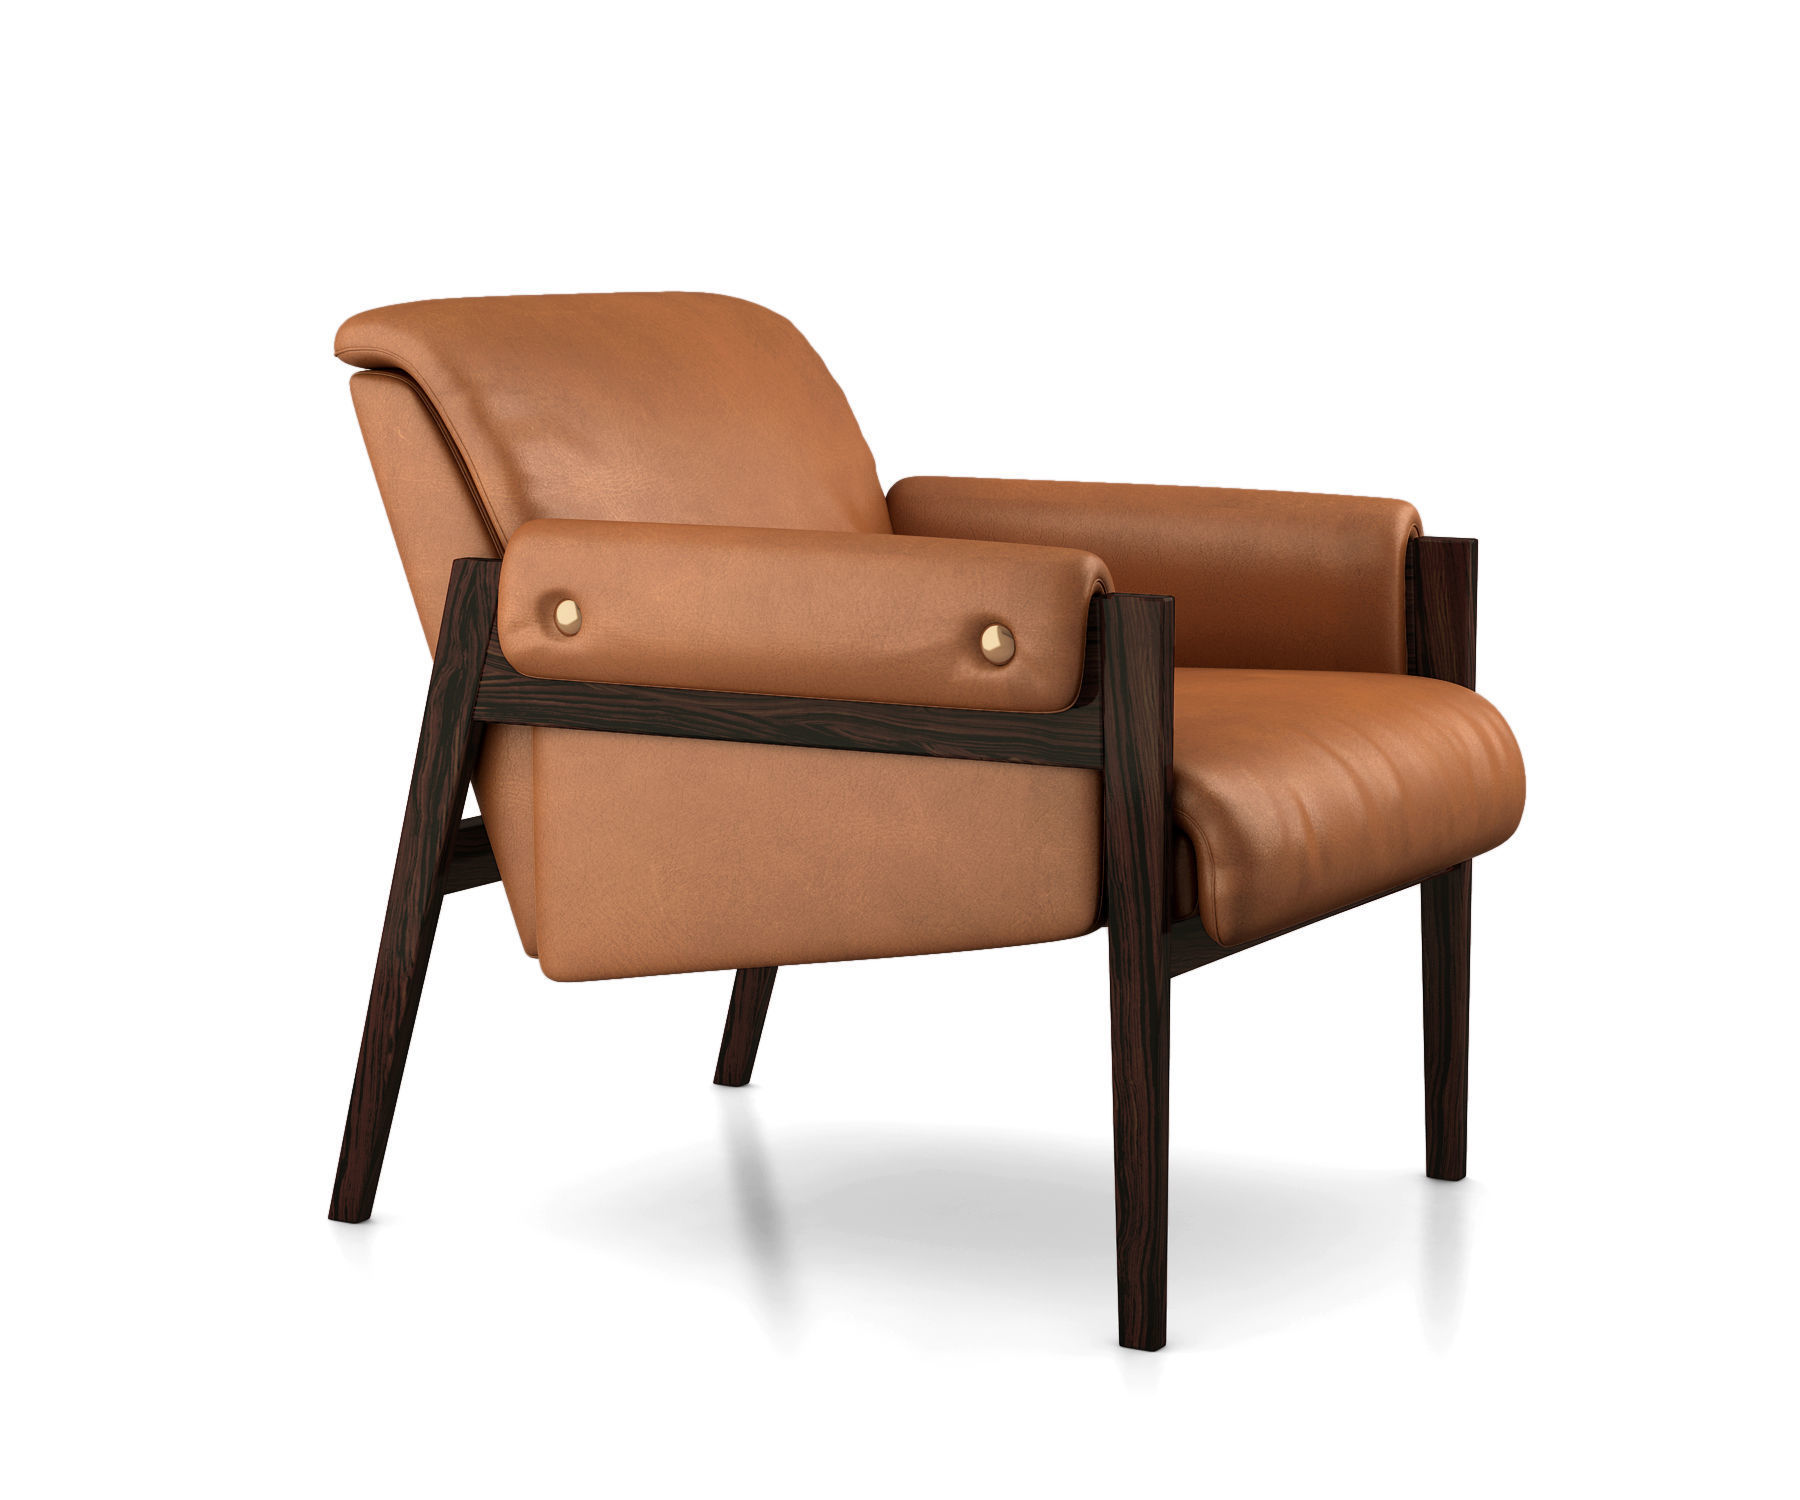 Superb Stanton Leather Chair By West Elm 3D Model Alphanode Cool Chair Designs And Ideas Alphanodeonline